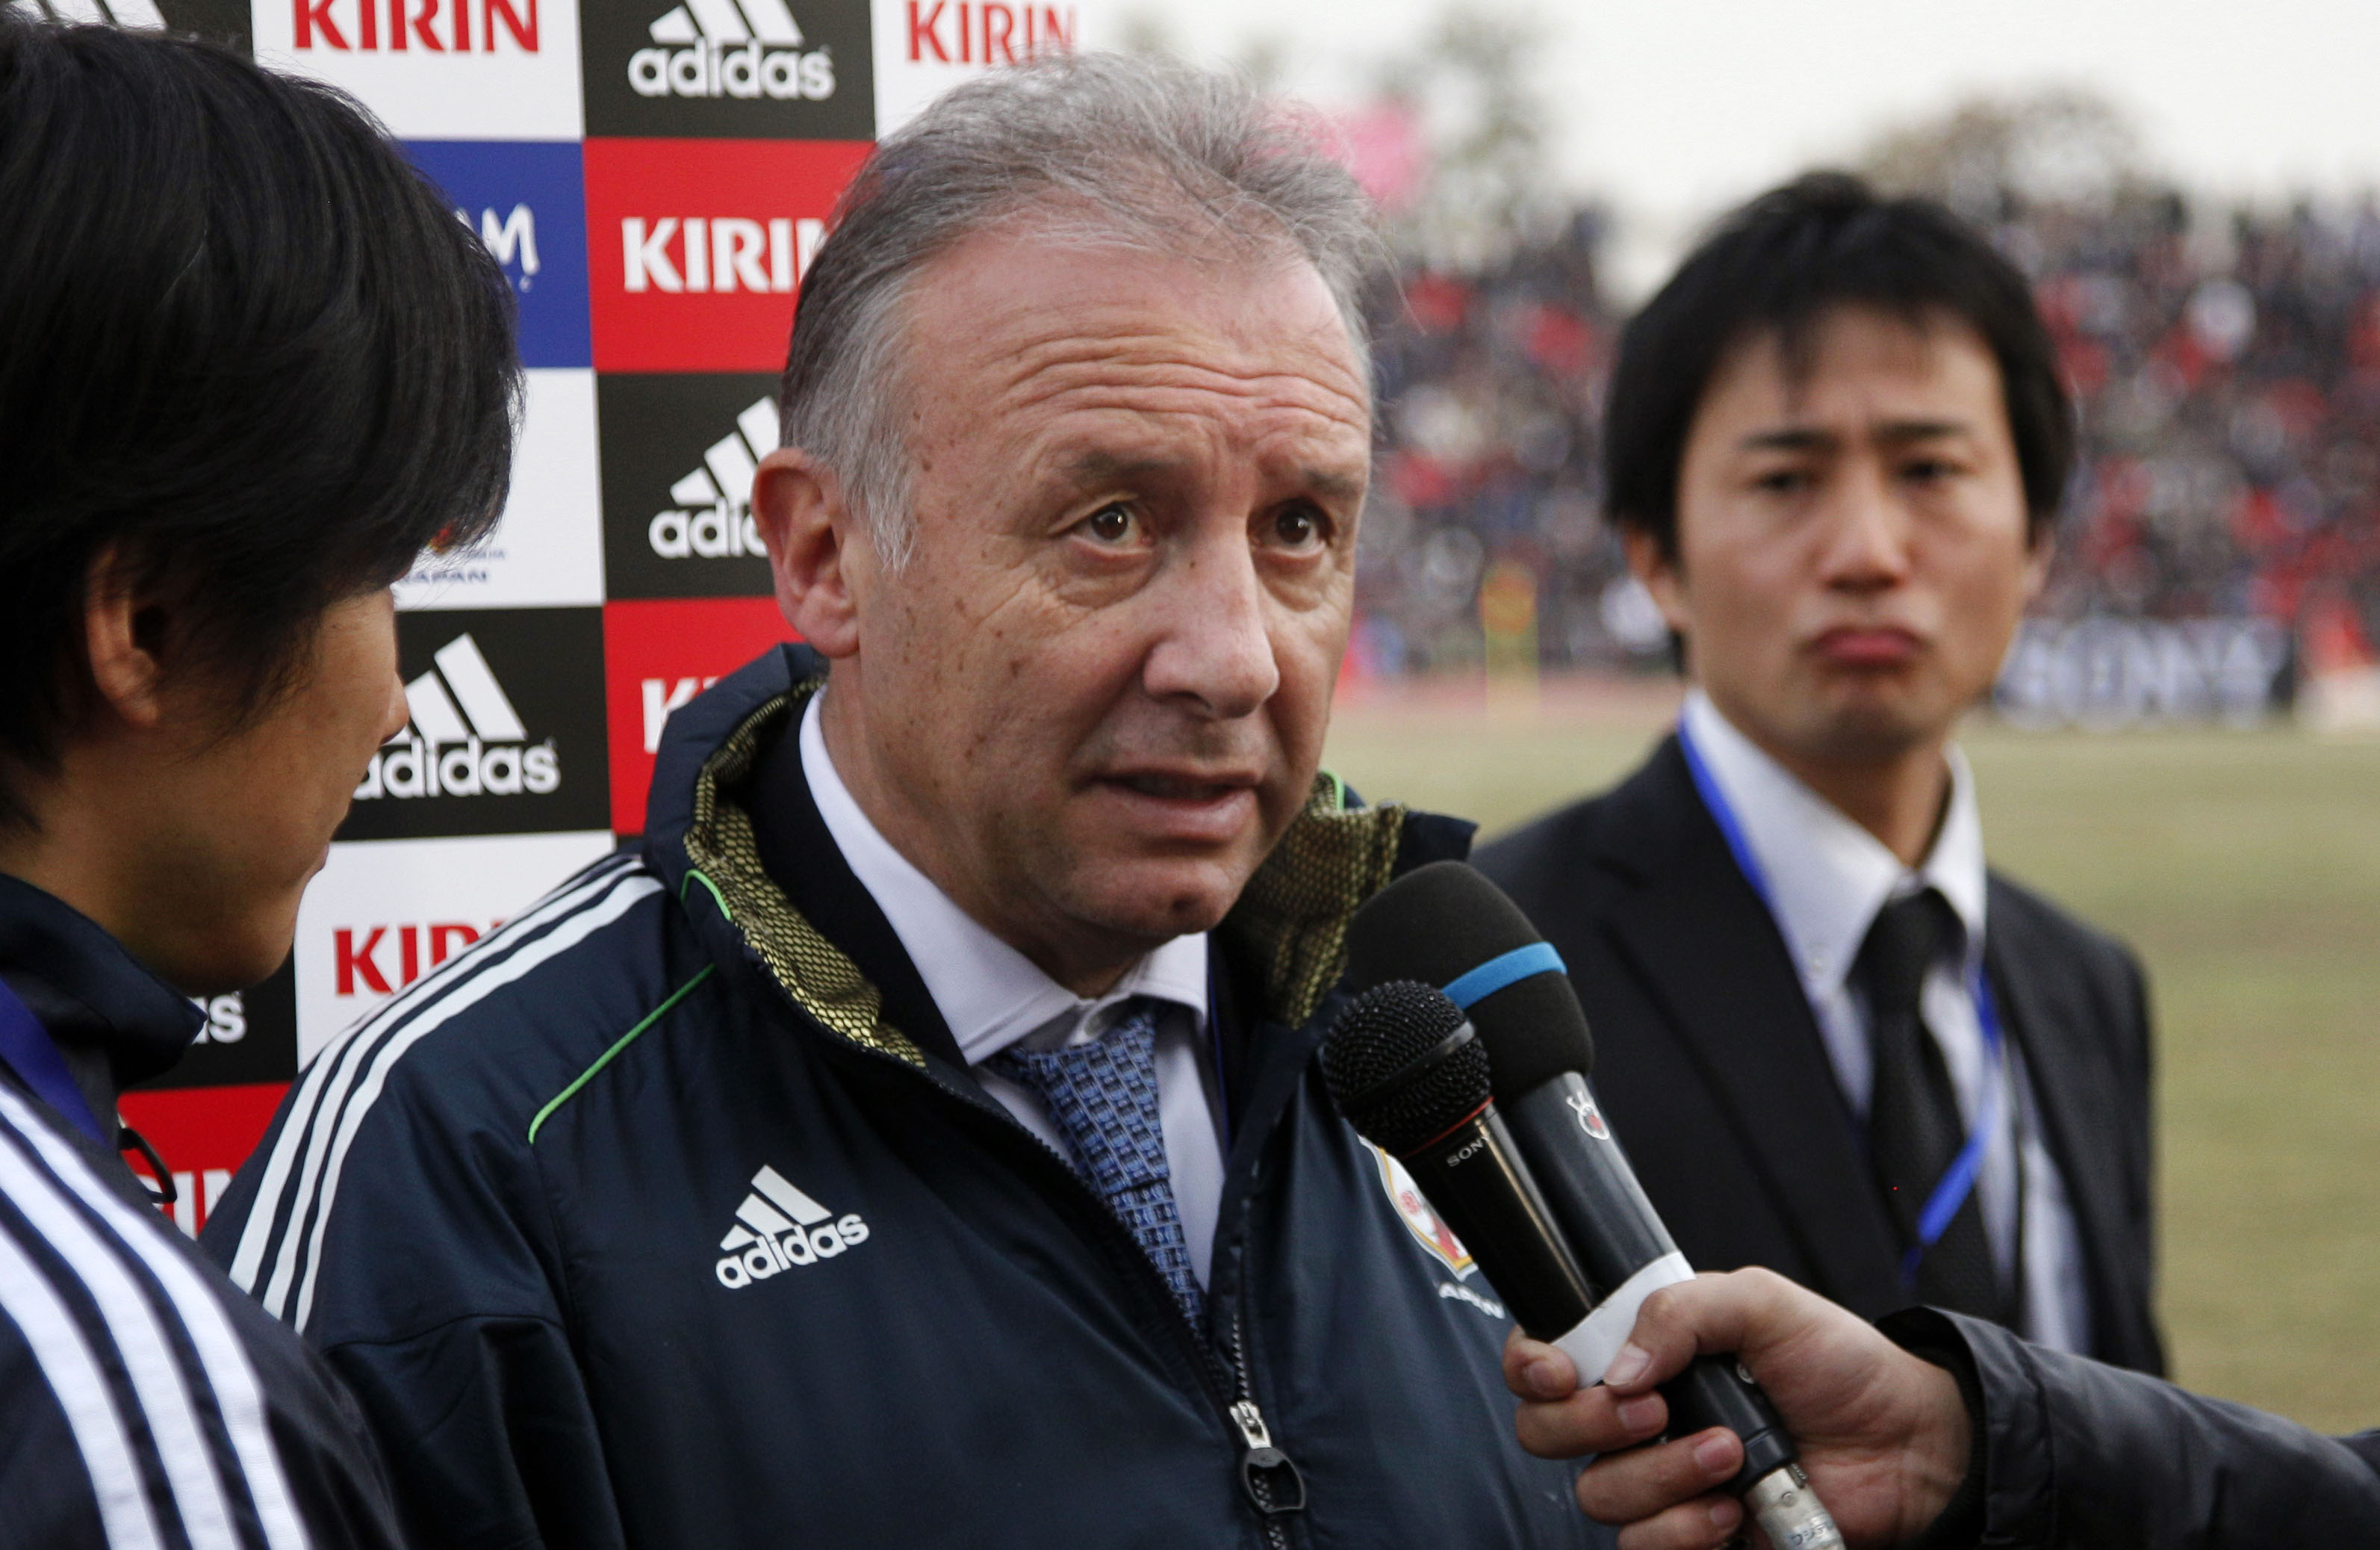 Job in hand: National team manager Alberto Zaccheroni wants Japan to qualify for the 2014 World Cup as early as possible. | AP